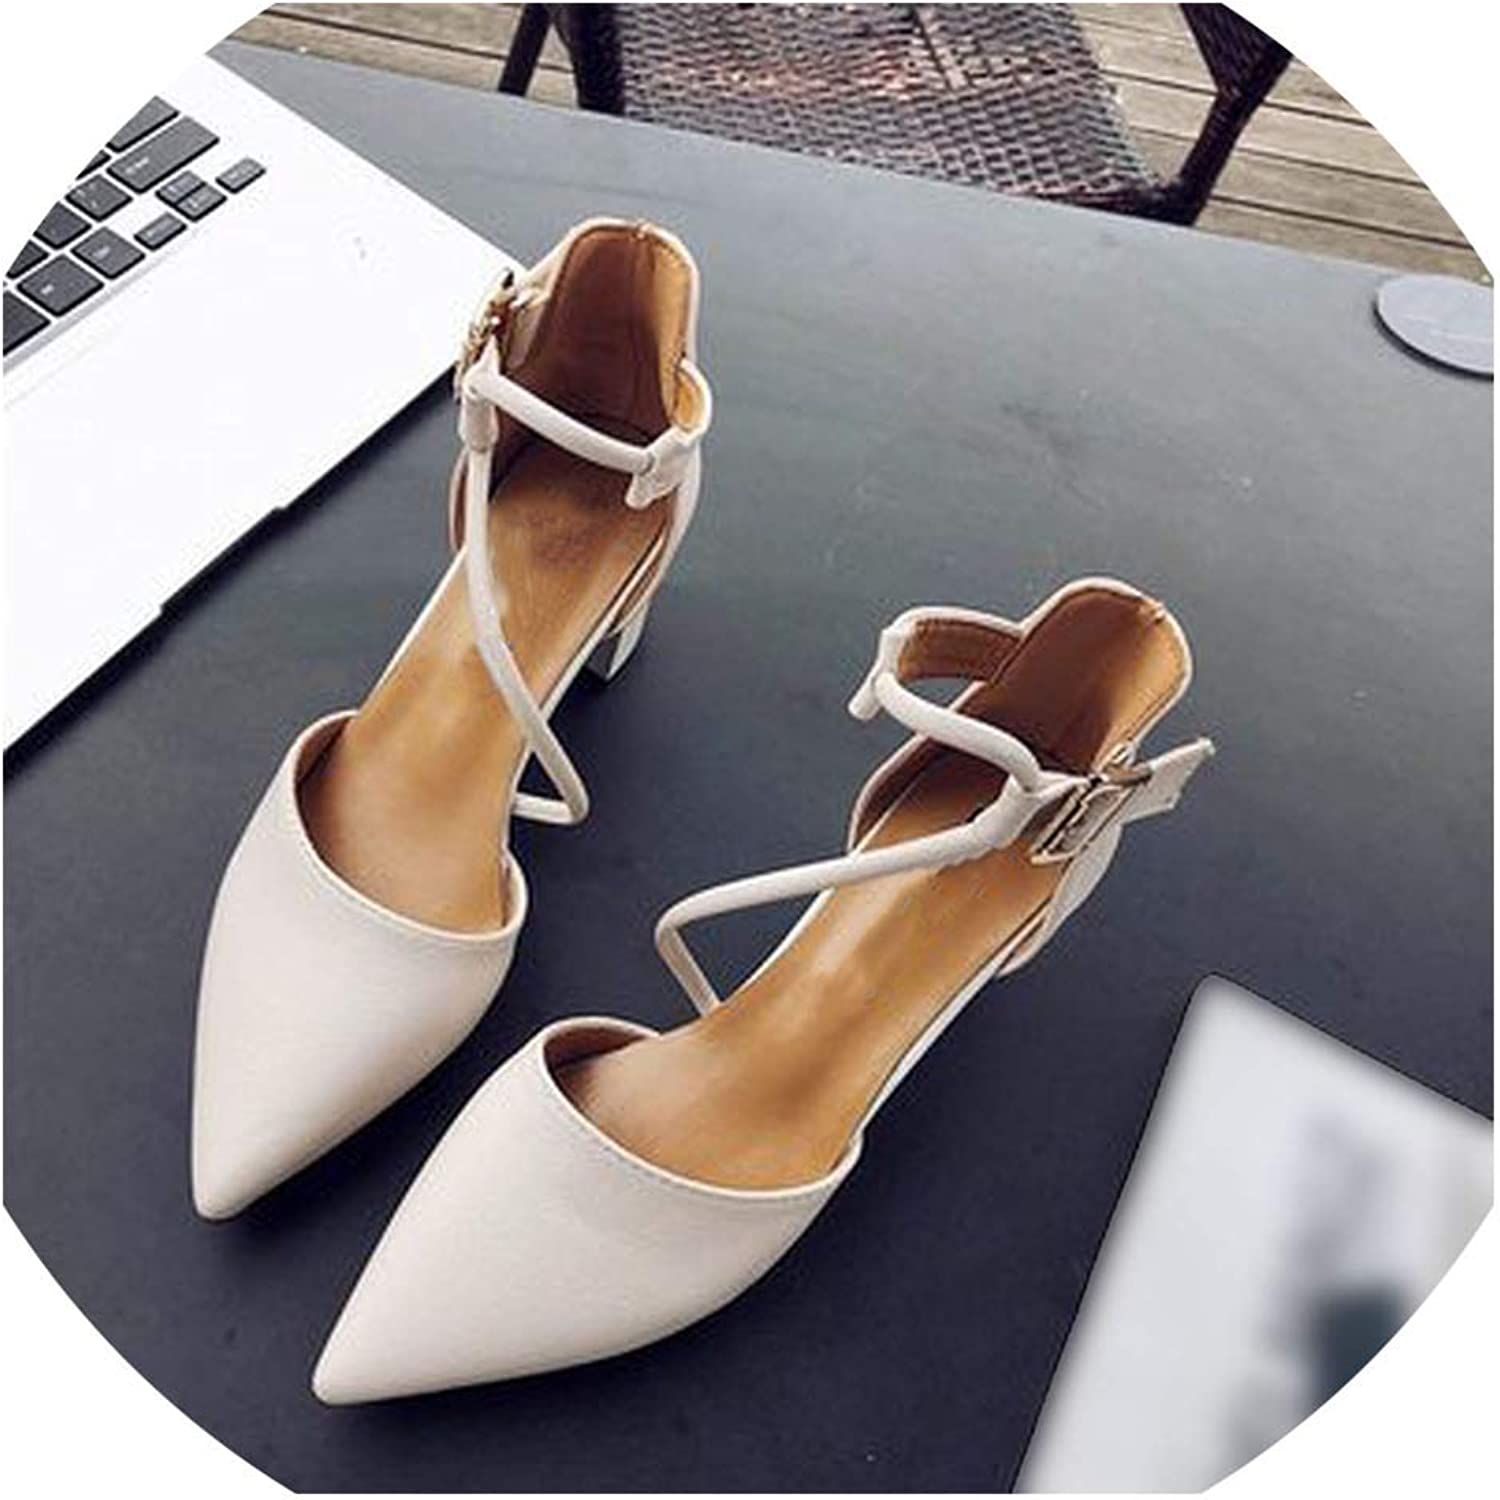 Axd-Home Comfortable Wild Thick with Single shoes Pointed Straps high Heels